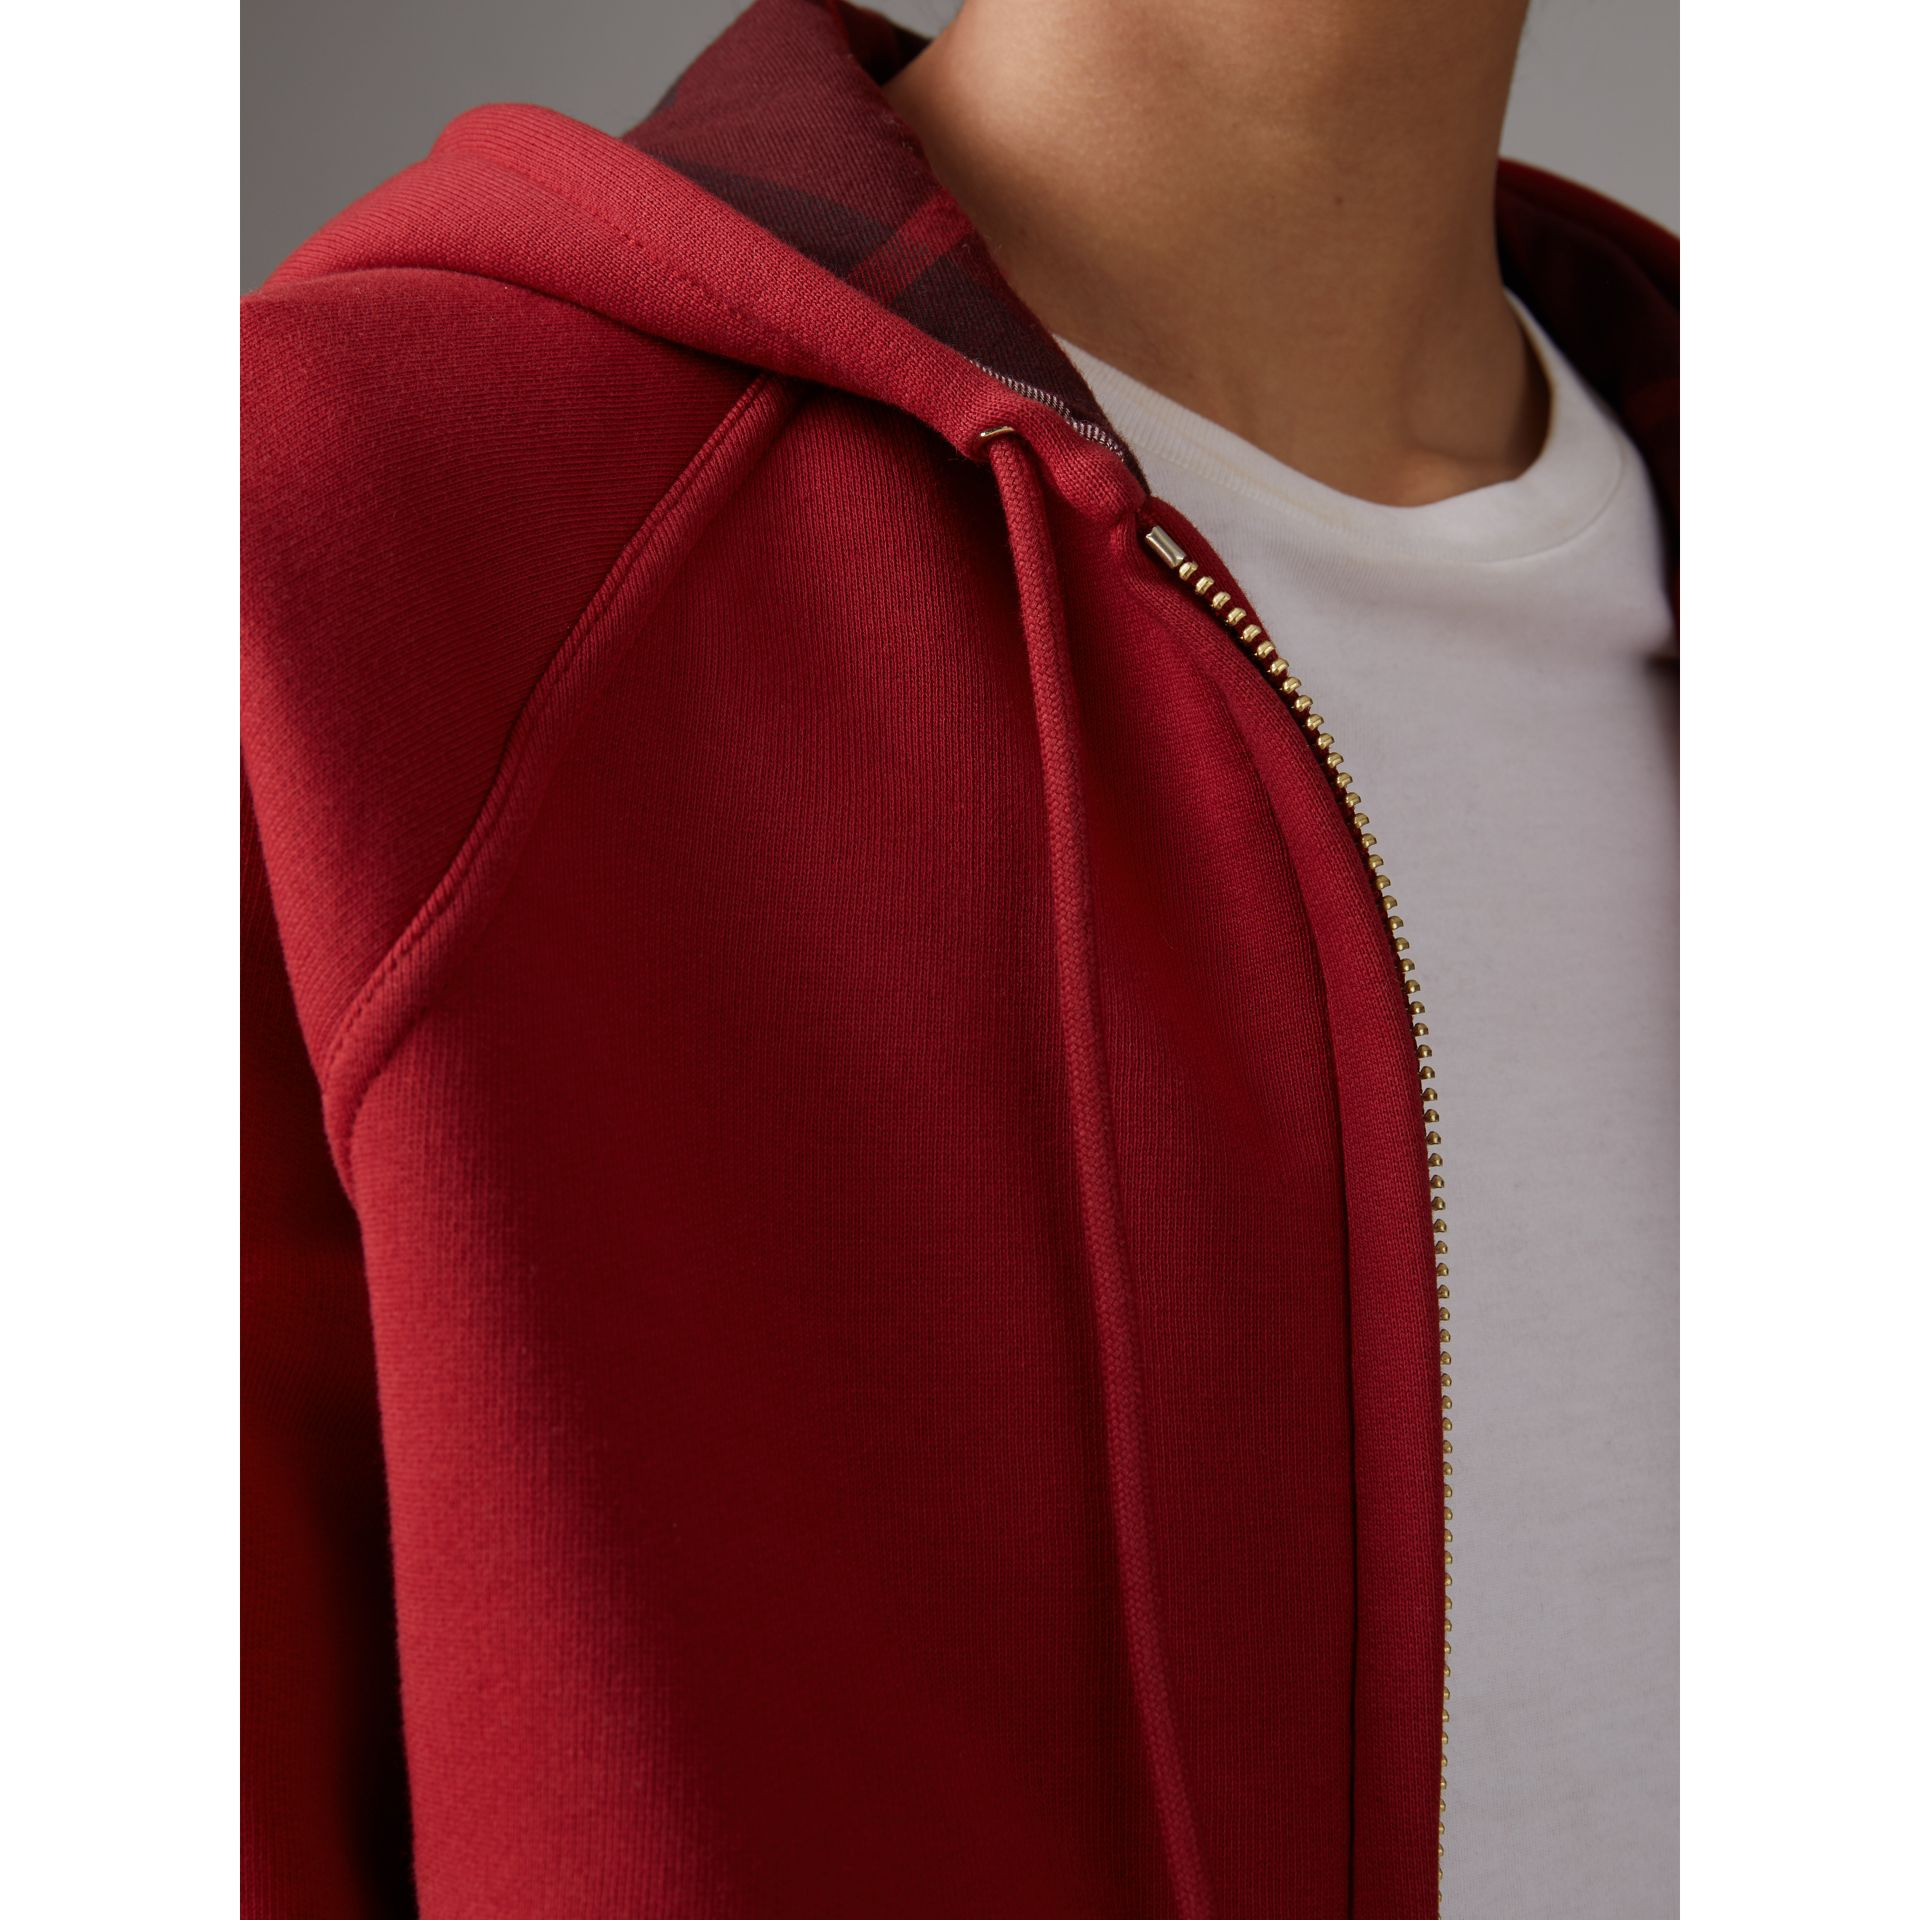 Hooded Zip-front Cotton Blend Sweatshirt in Parade Red - Women | Burberry - gallery image 1